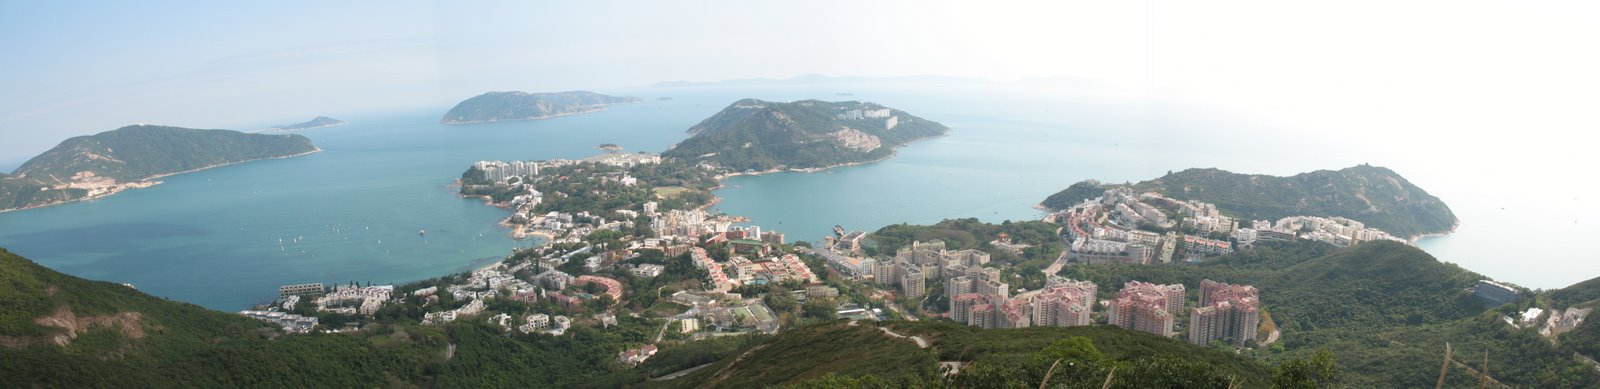 A panoramic view of Stanley, Hong Kong, taken by yours truly!